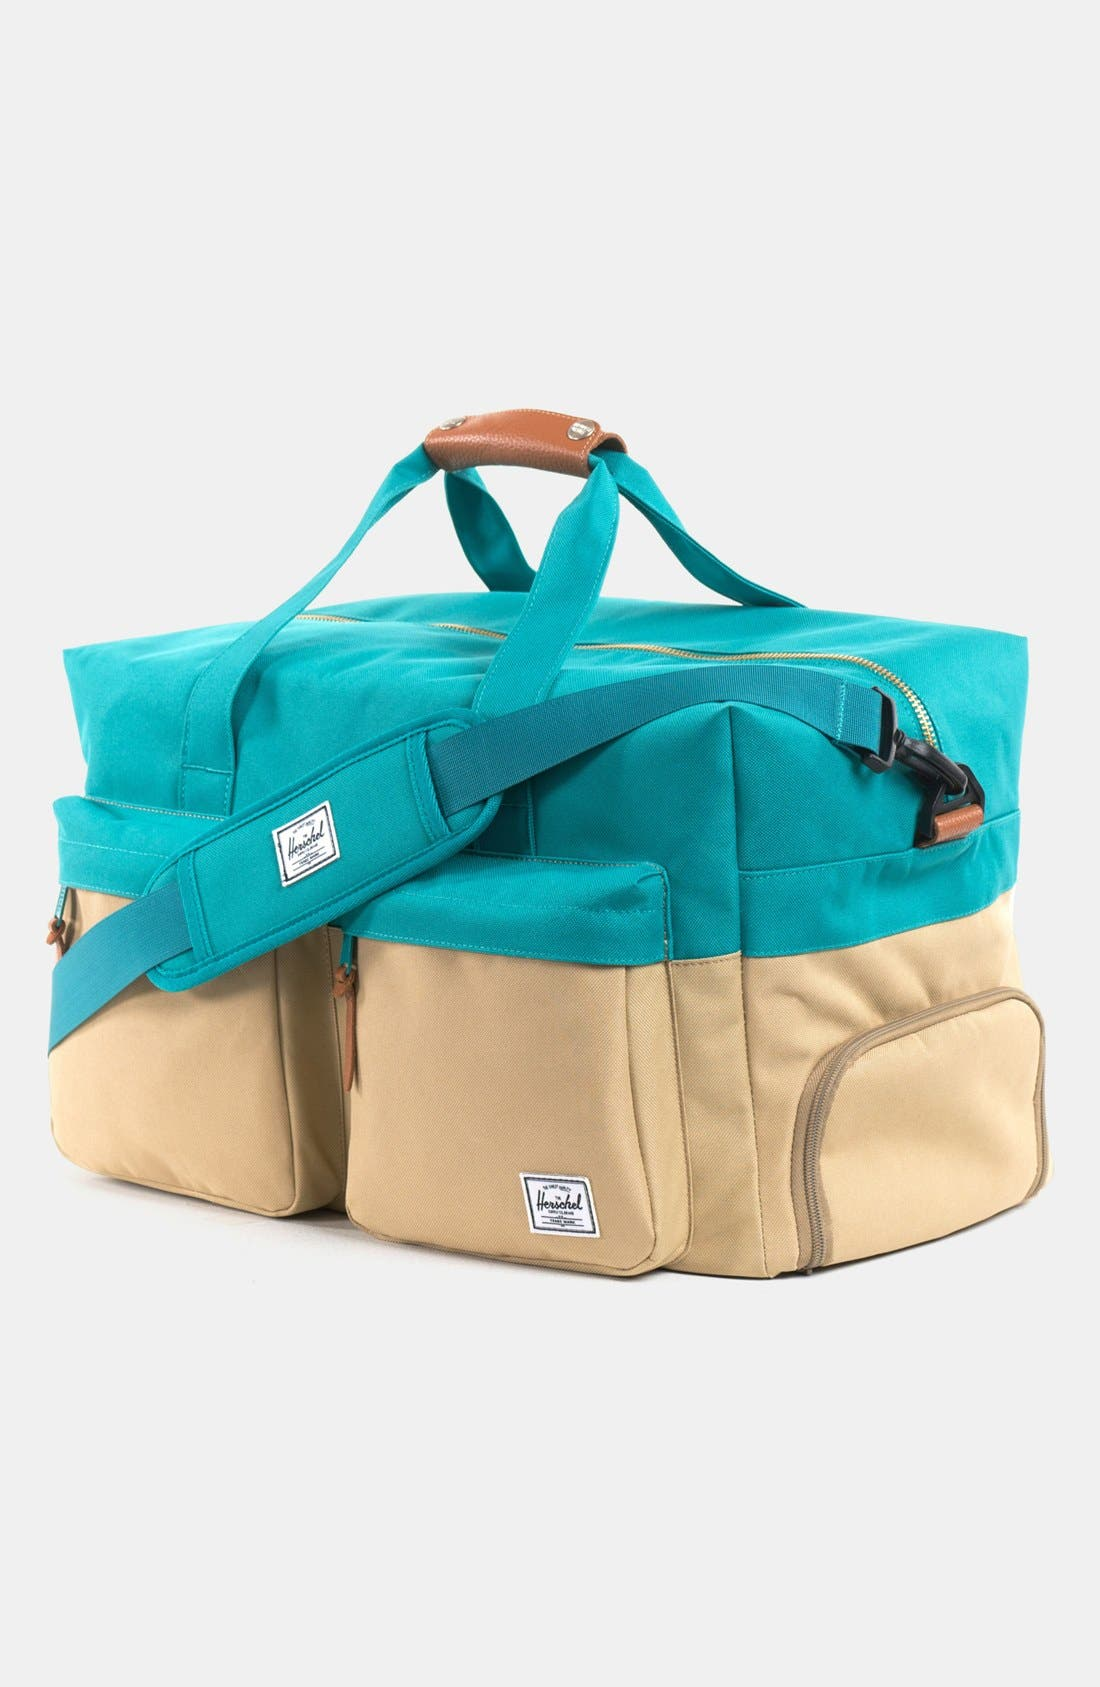 Alternate Image 1 Selected - Herschel Supply Co. 'Walton' Duffel